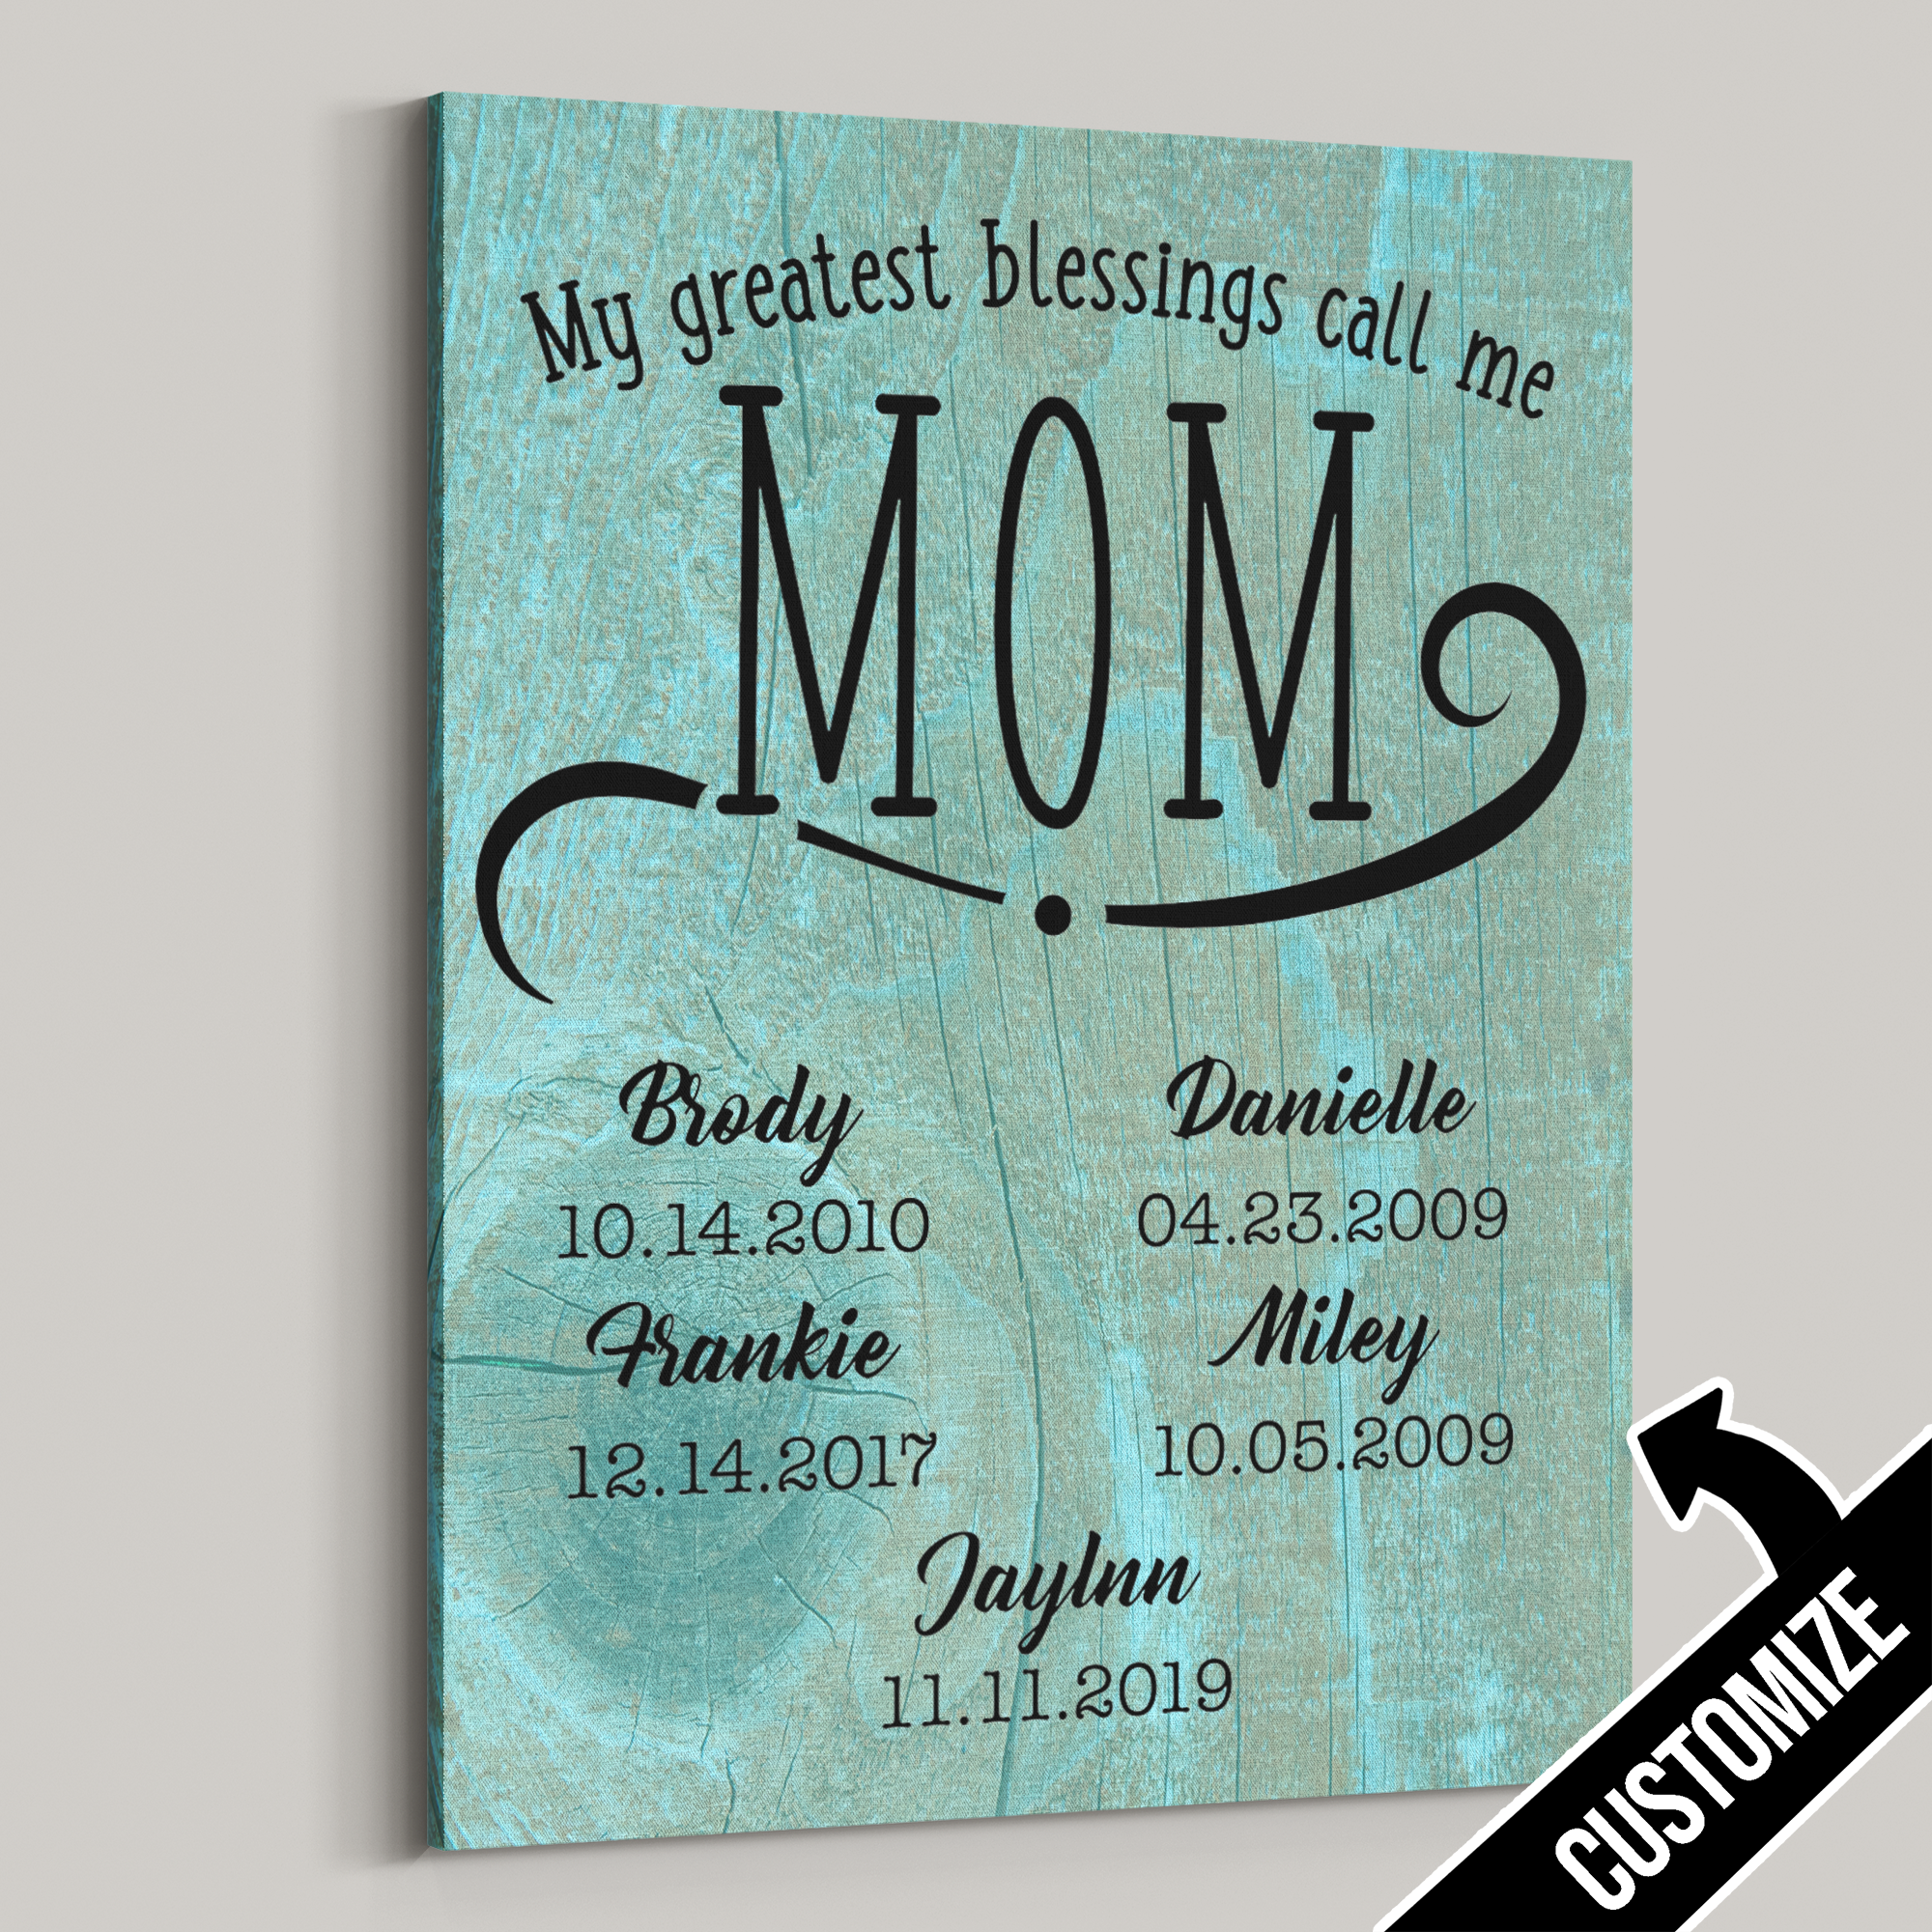 My Greatest Blessings Call Me Mom Rustic Wood Knot Canvas - Patriot Republic